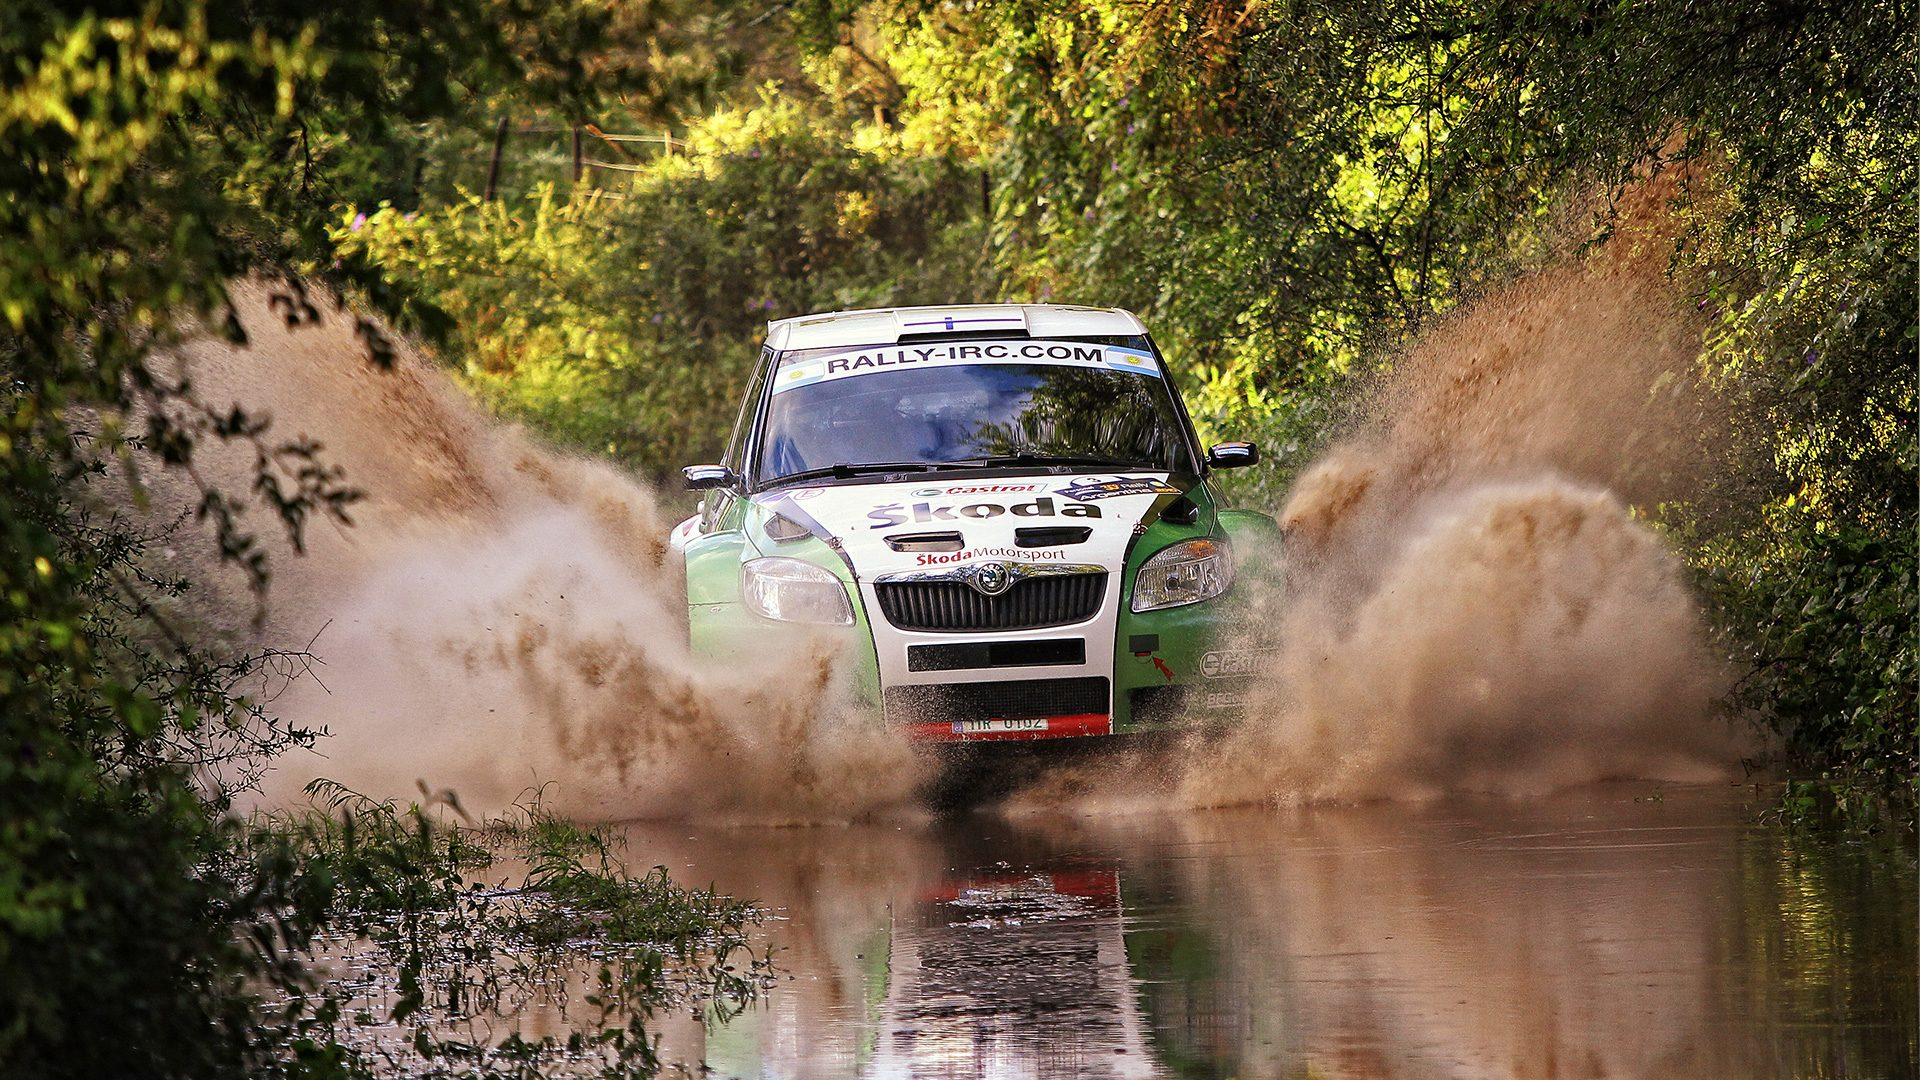 Water, Sand and Crowds: Rally Argentina